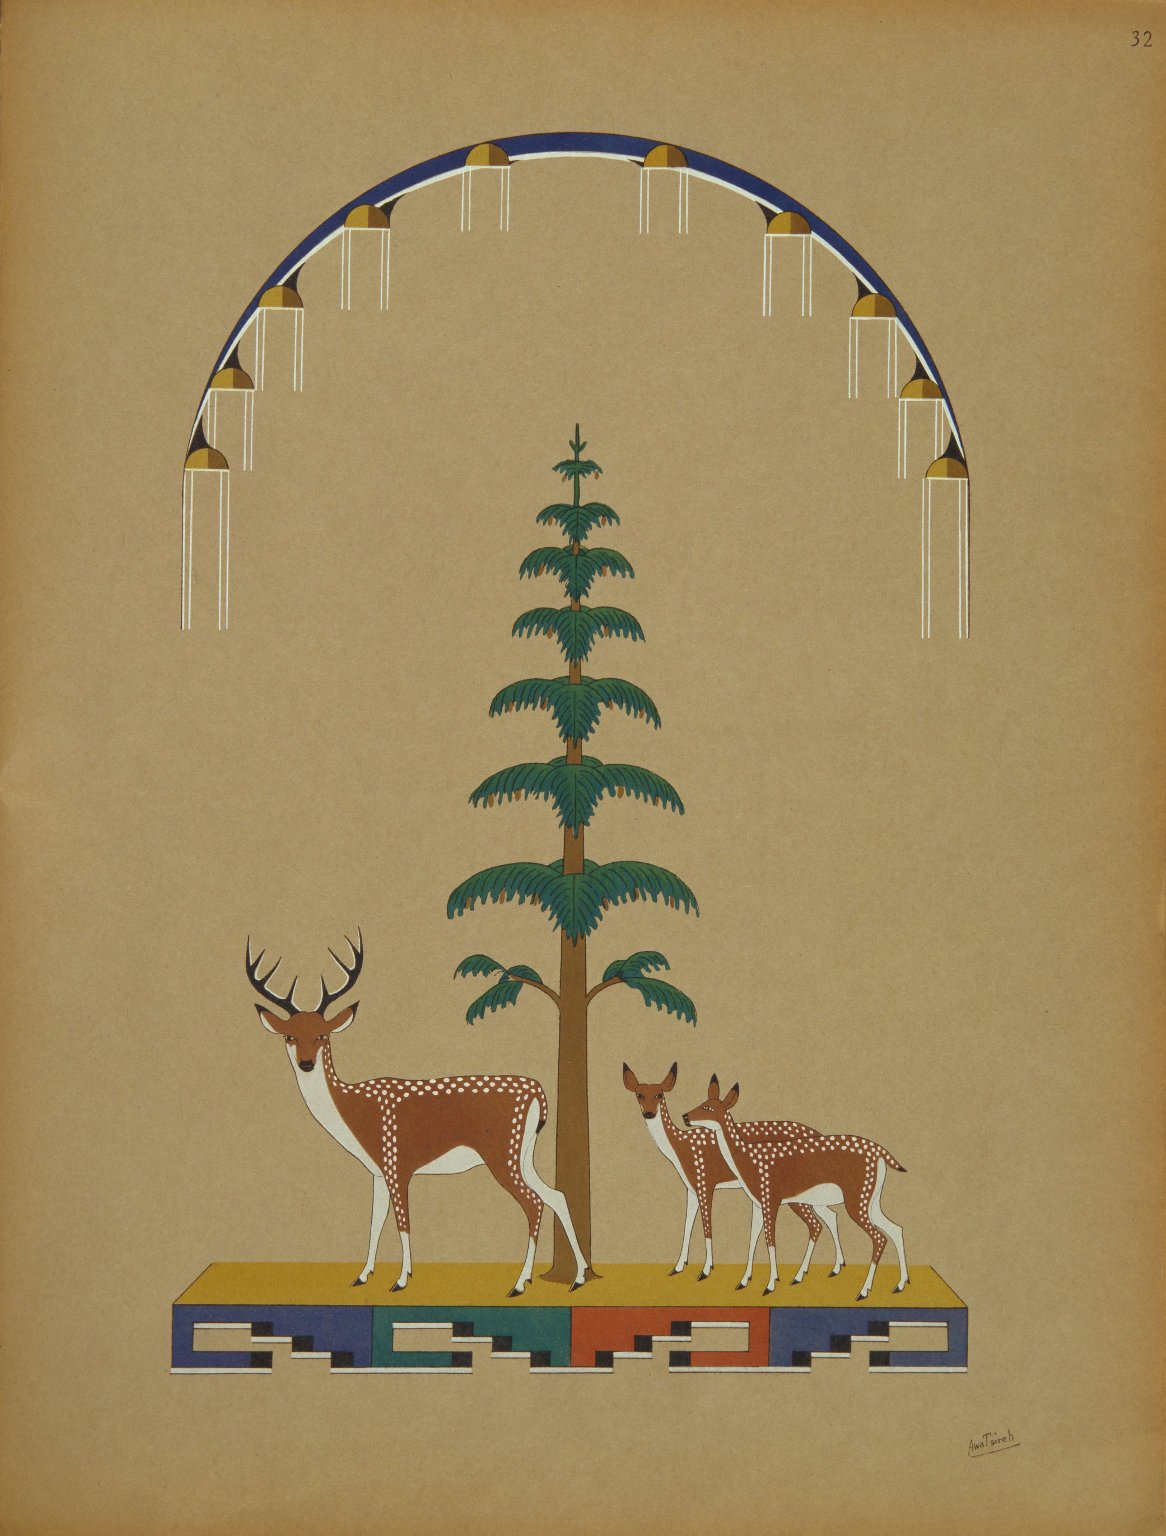 Landscape Showing Deer with Tree and Rainy Sky